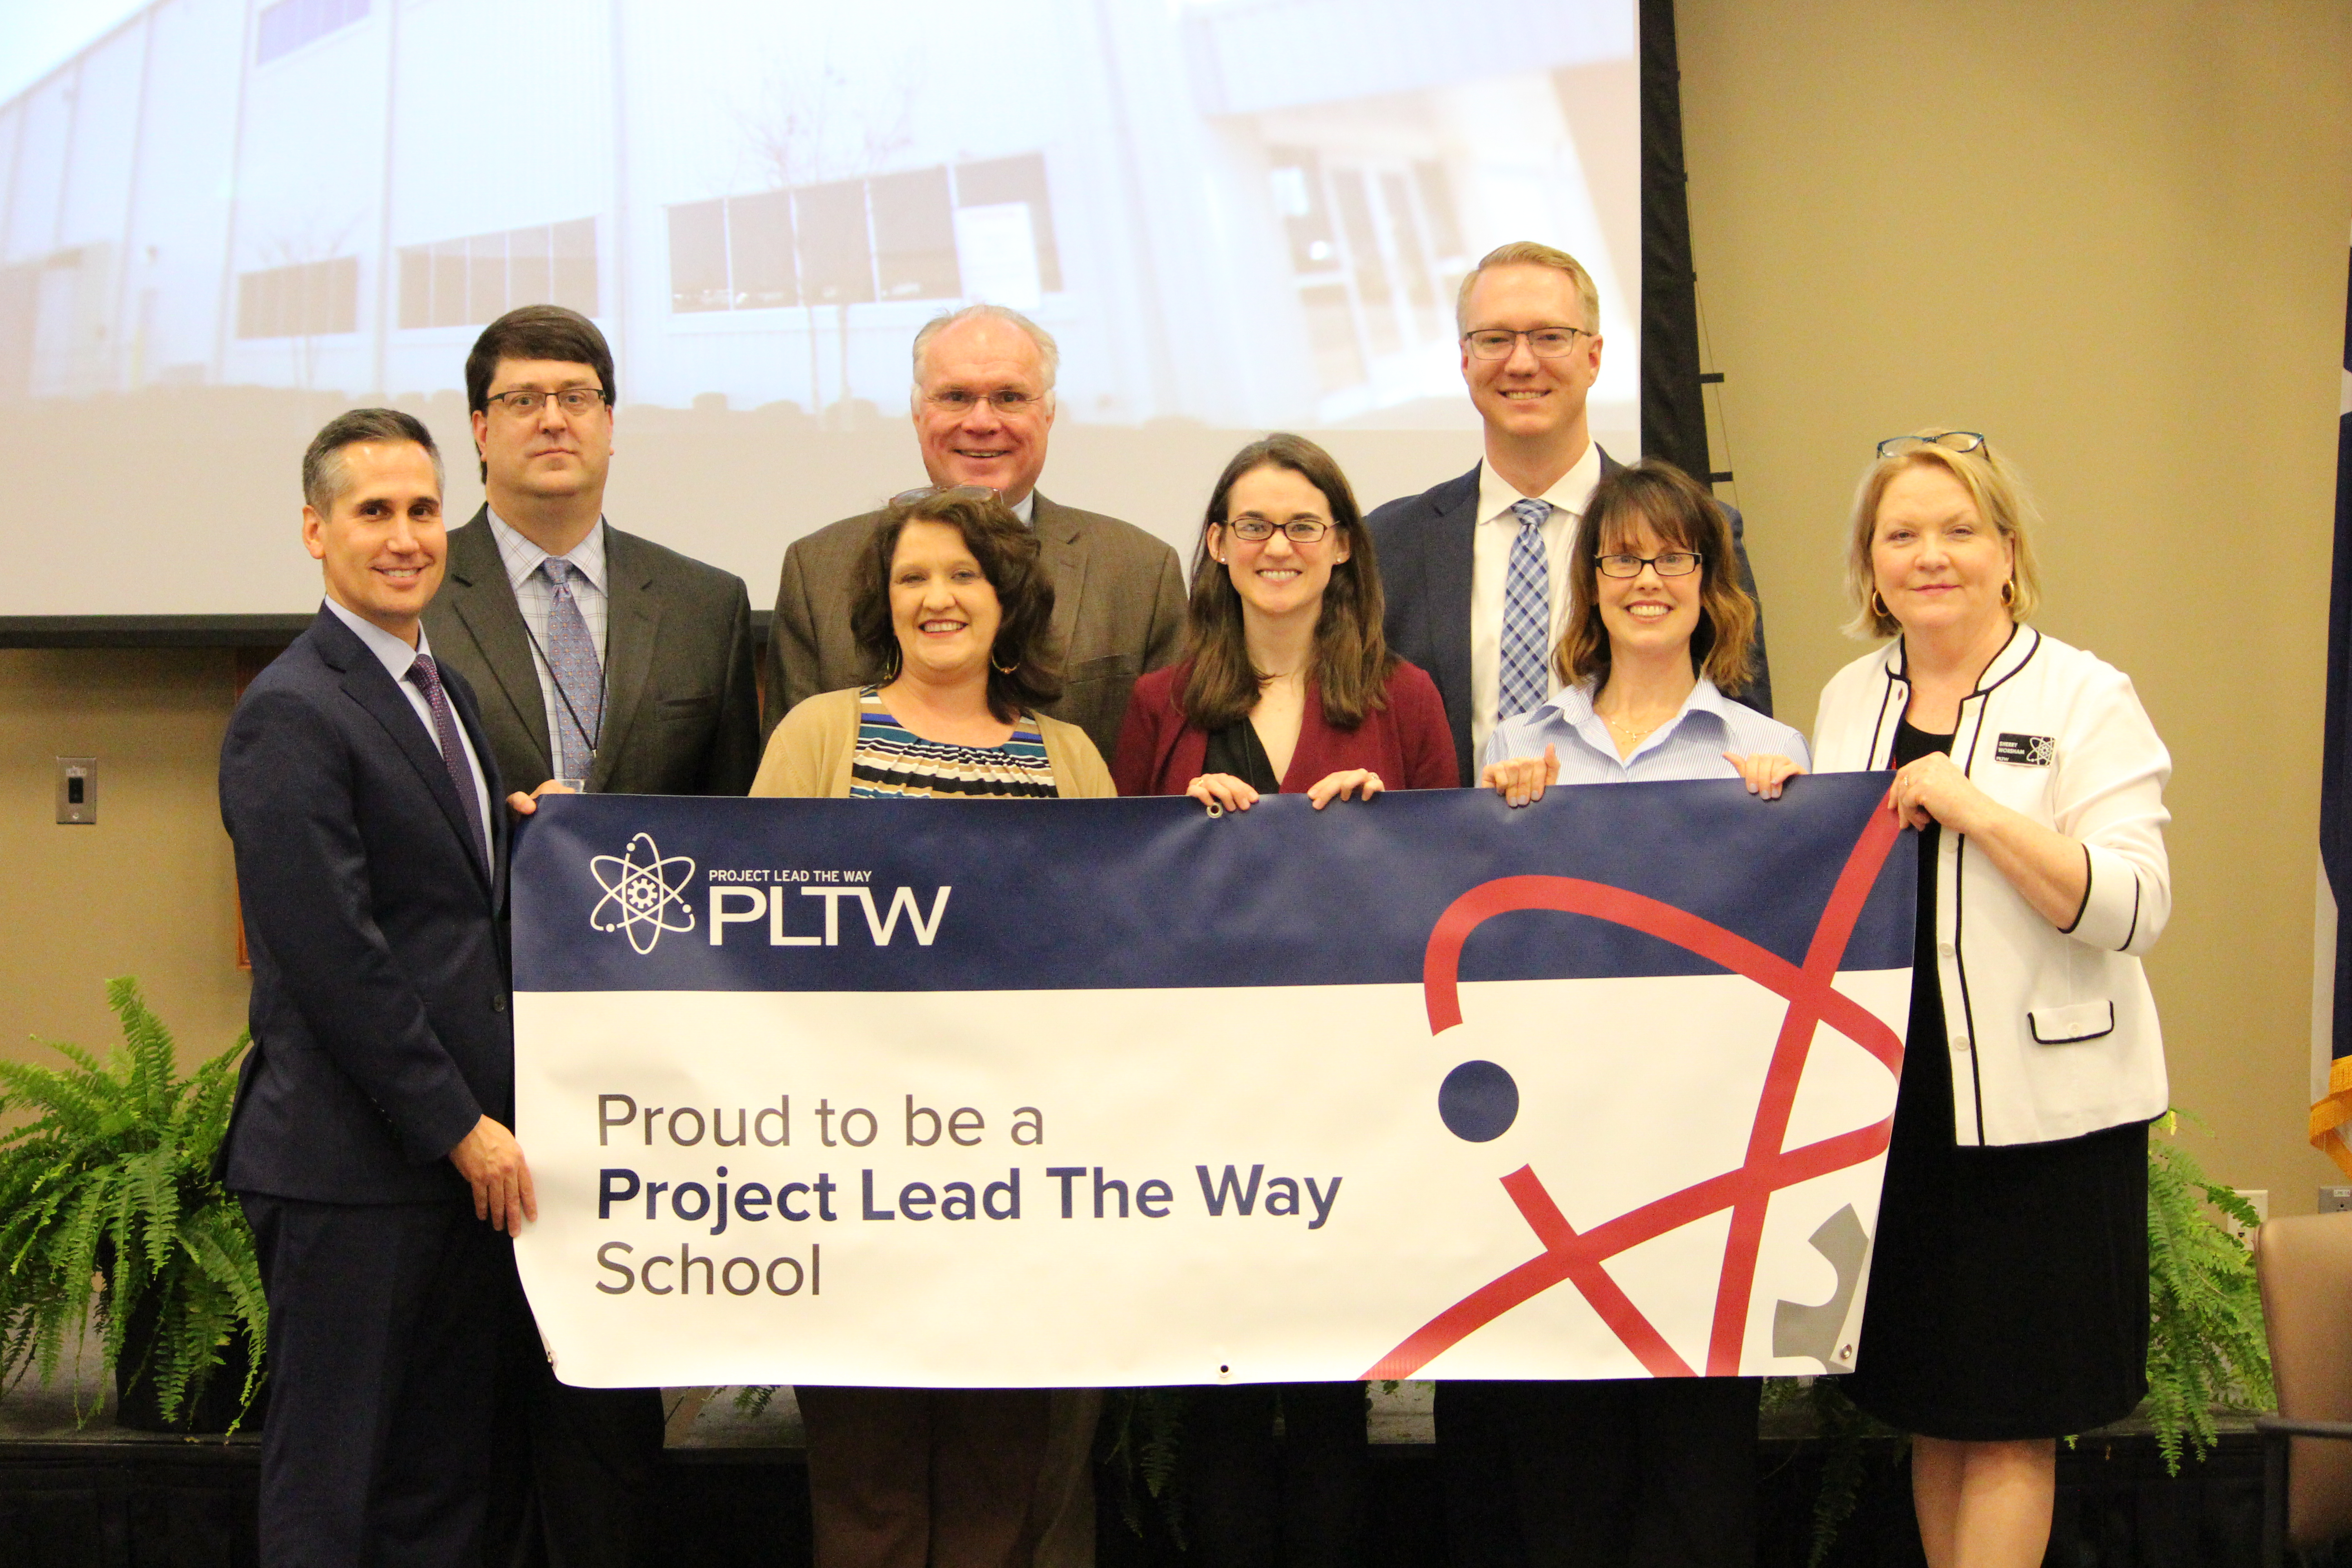 PLTW recipients